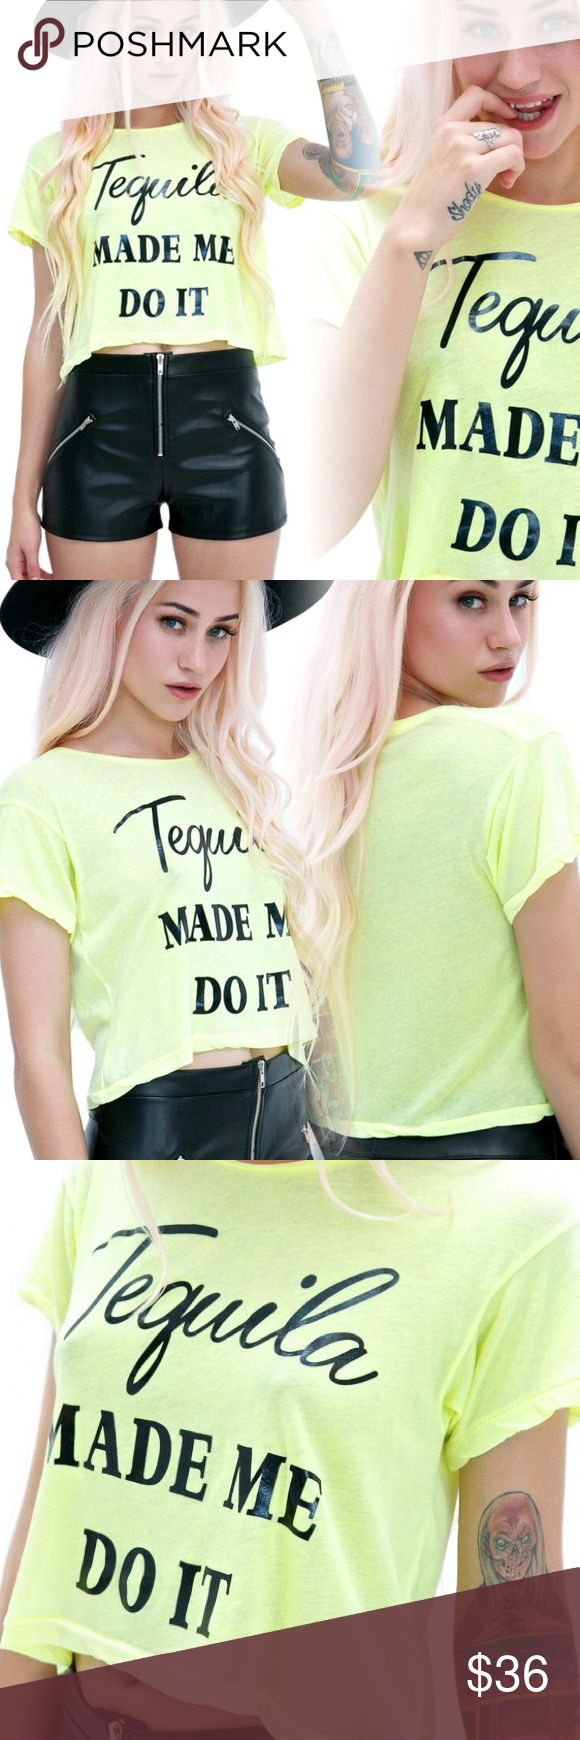 Wildfox middle tee Wildfox middle tee bright, black lettering tequila made me do it. Size small, new with tags (: Wildfox Tops Tees - Short Sleeve